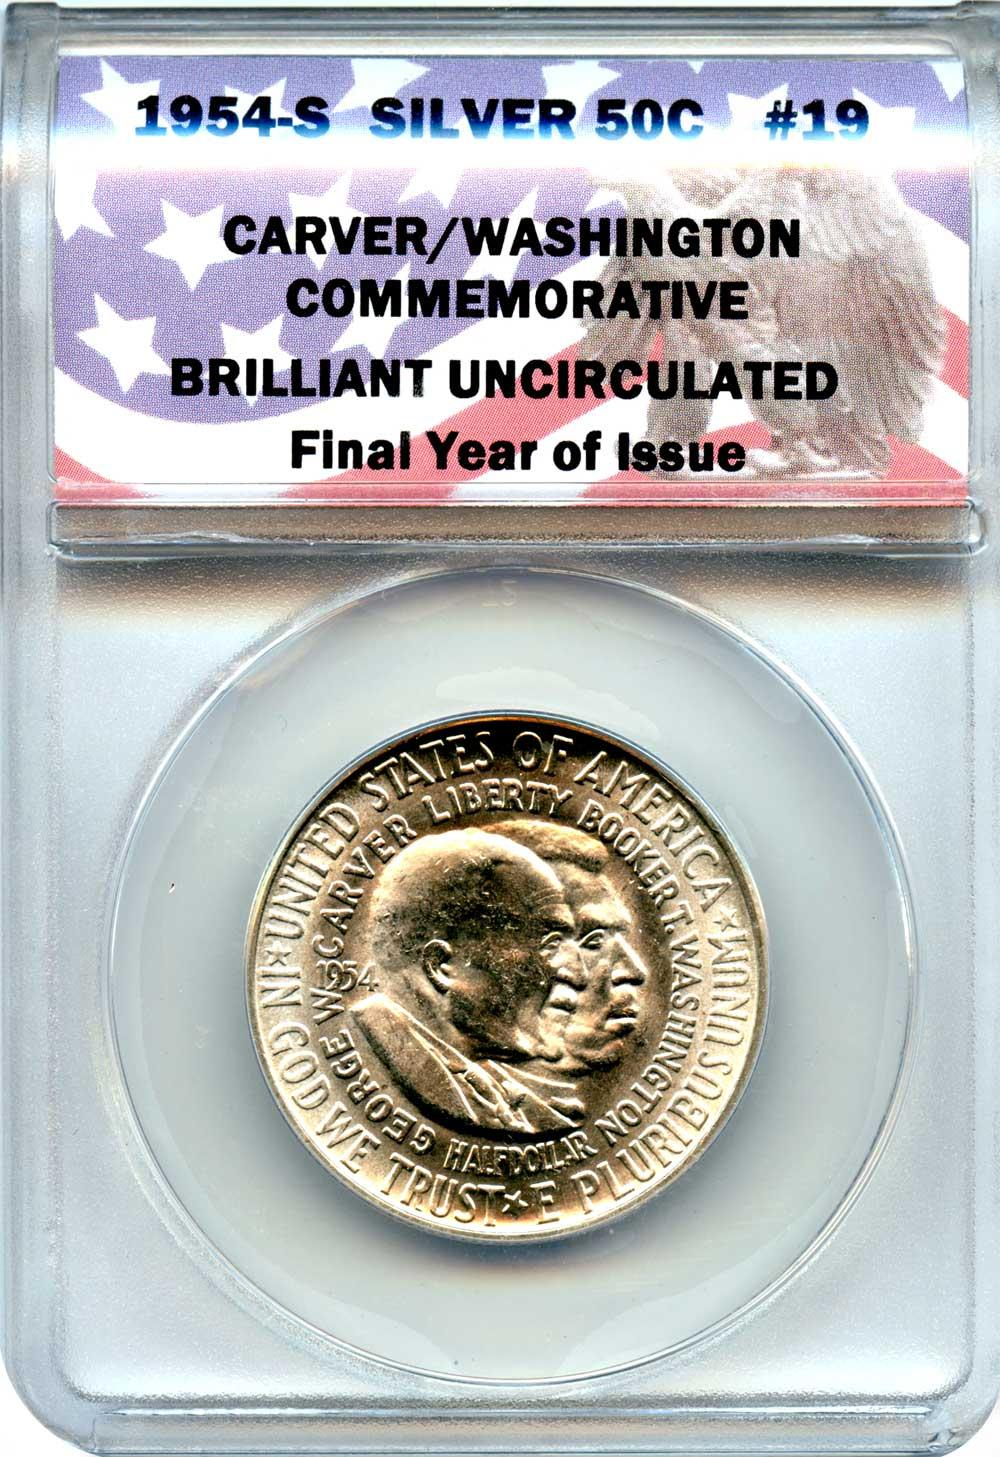 CollecTons Keepers #19: 1954-S Carver/Washington Commemorative Half Dollar Certified in Exclusive ANACS Brilliant Uncirculated Holder